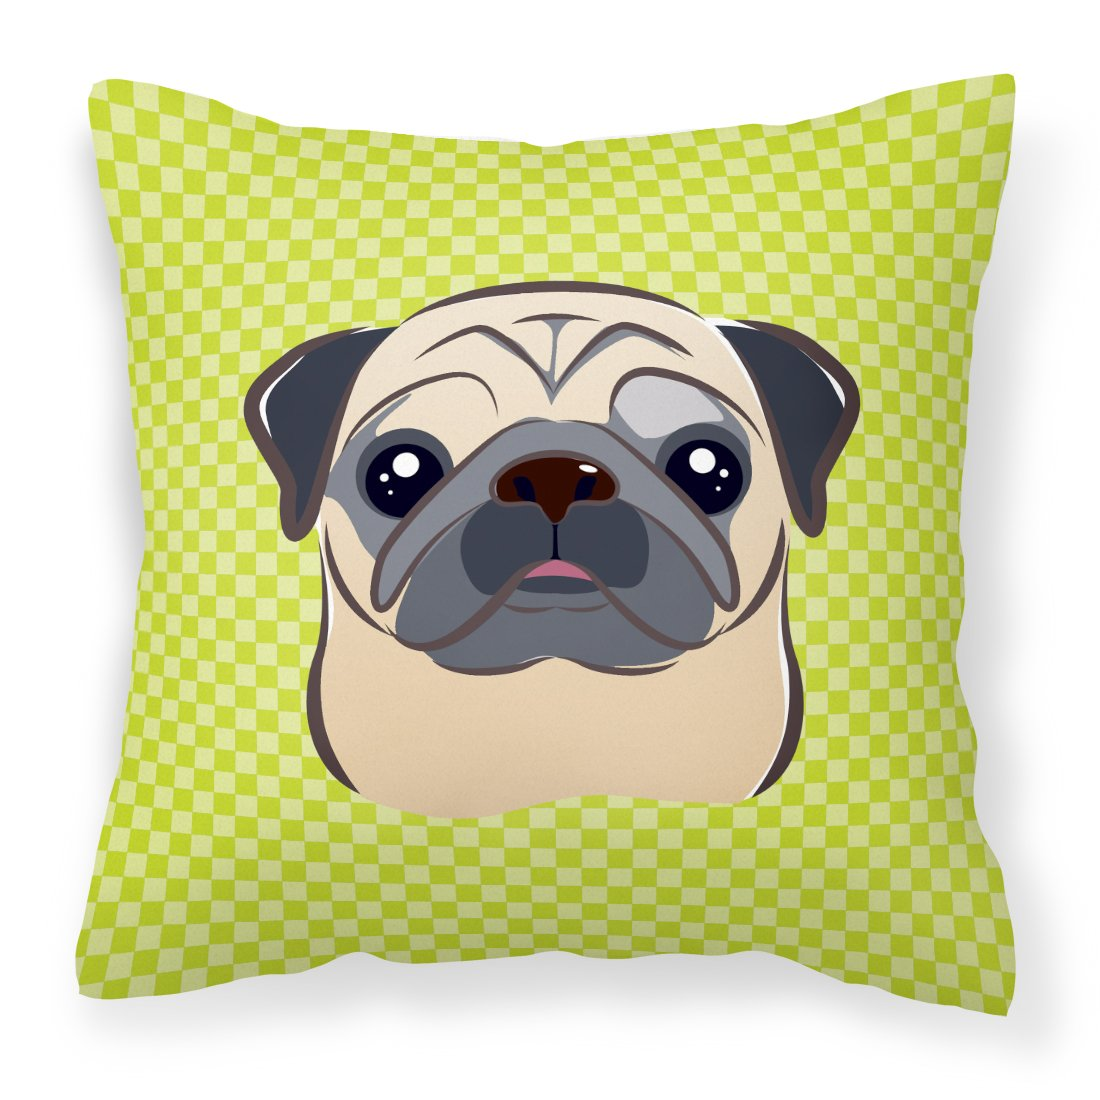 Buy this Checkerboard Lime Green Fawn Pug Canvas Fabric Decorative Pillow